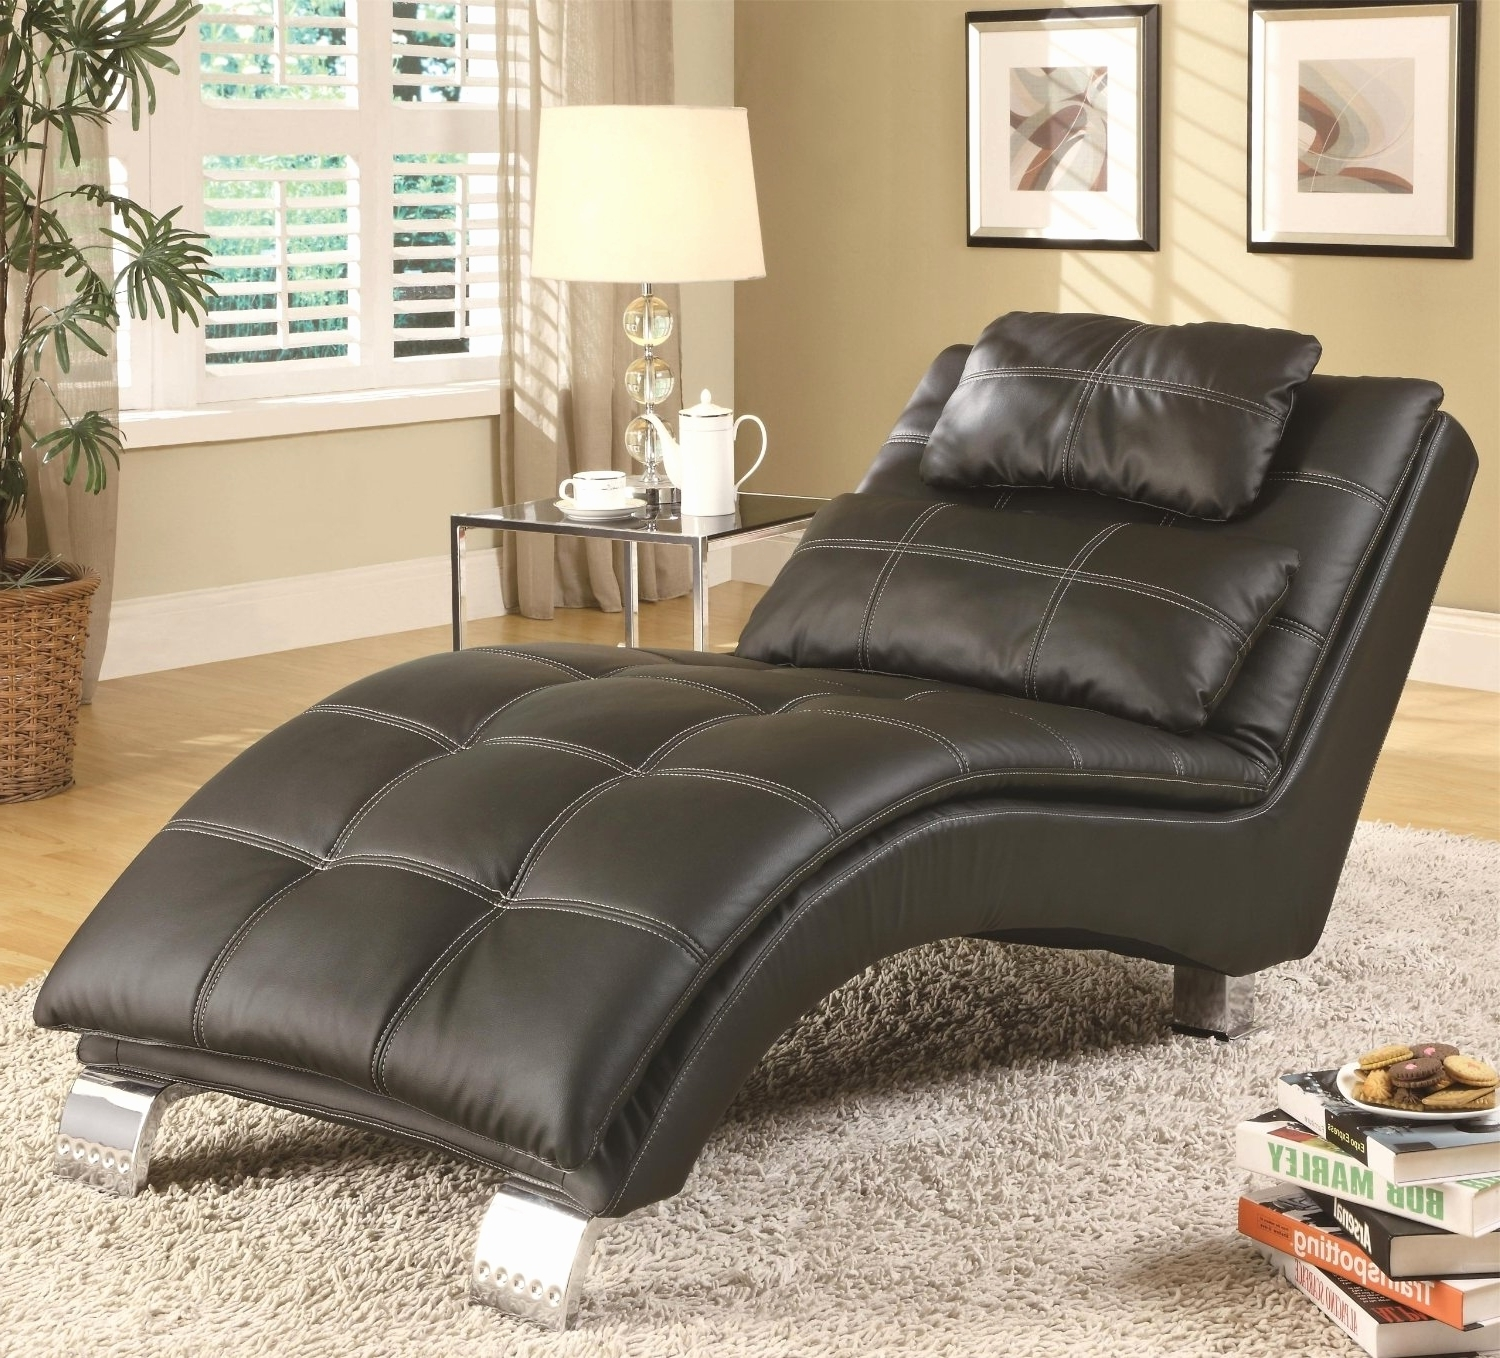 2017 Chaise Lounge Recliners Regarding 30 Fresh Costco Lounge Chairs Pictures (30 Photos) (View 2 of 15)